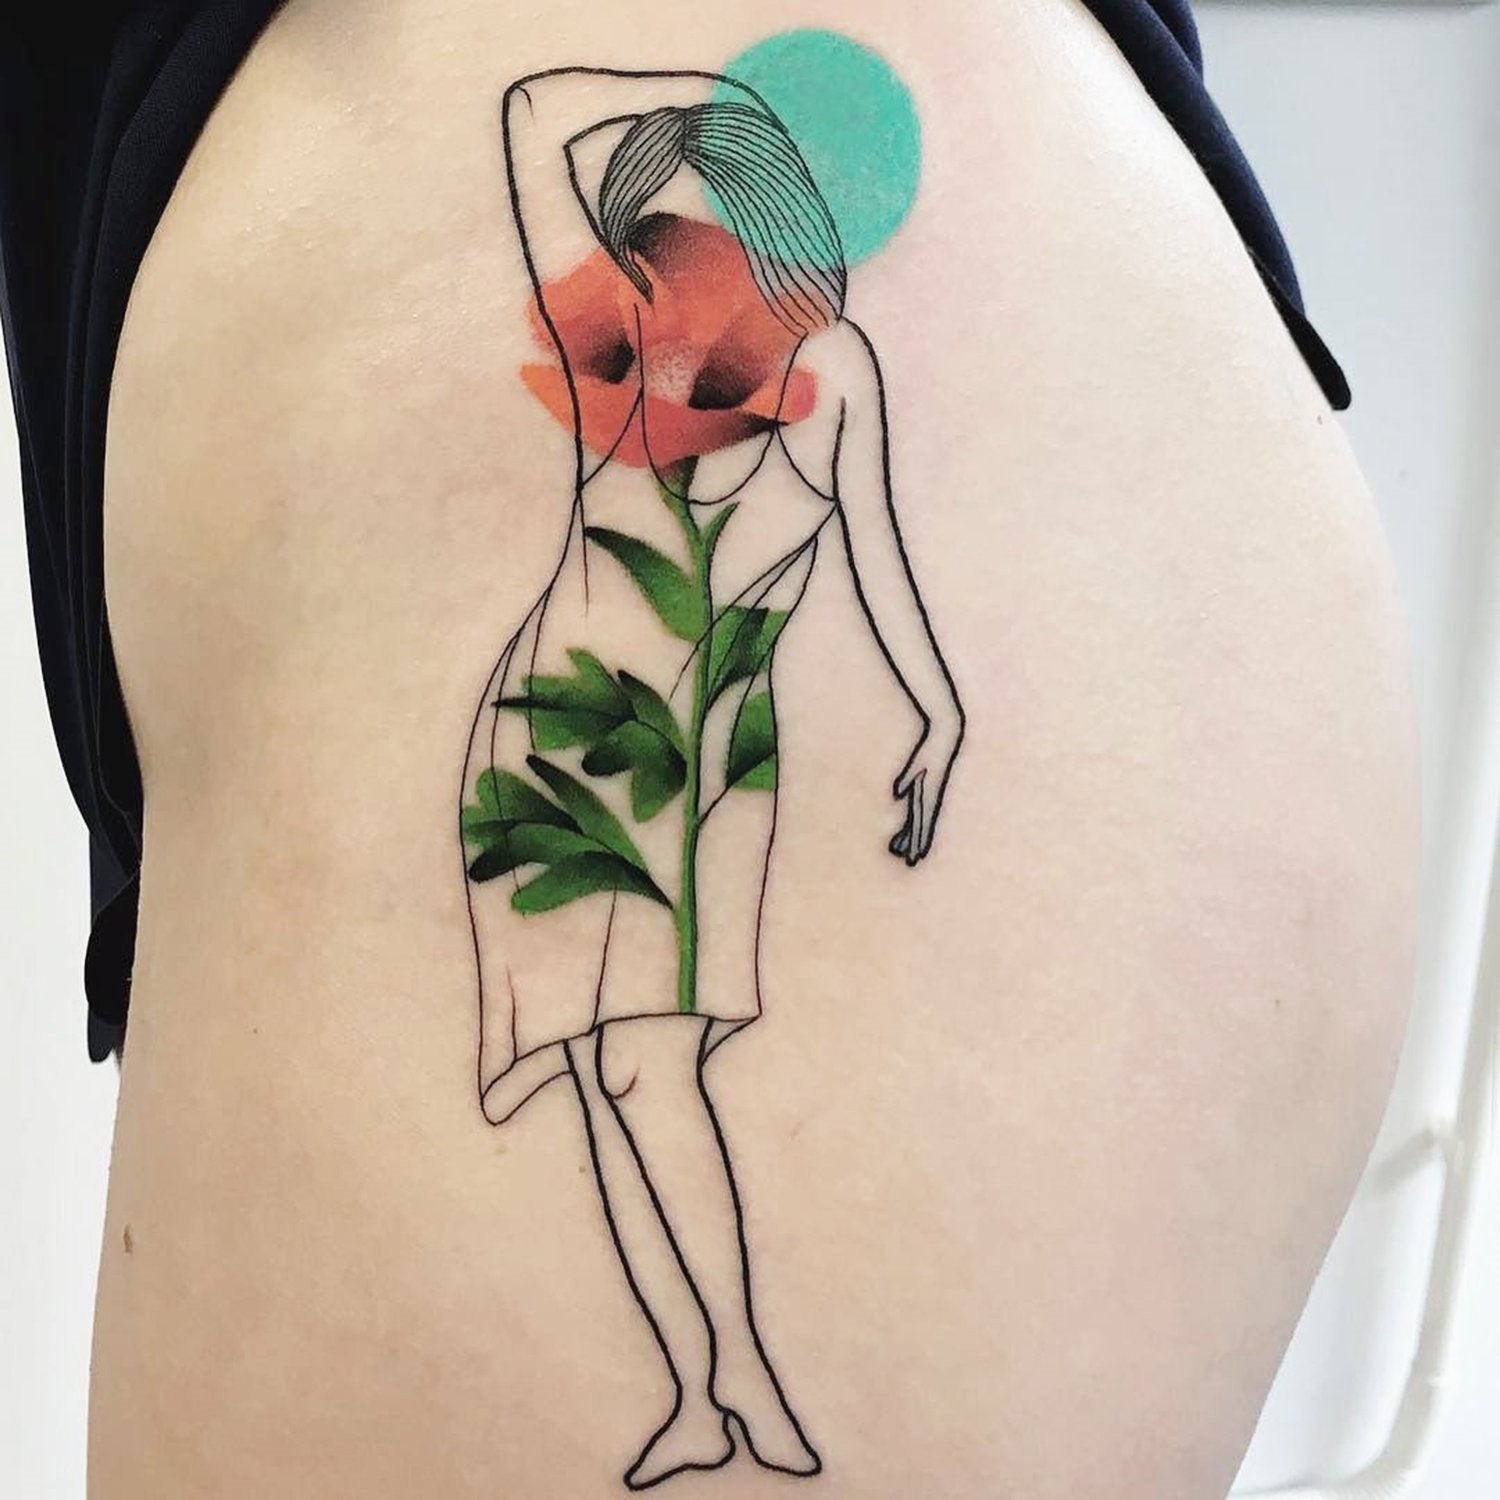 painterly tattoo, woman